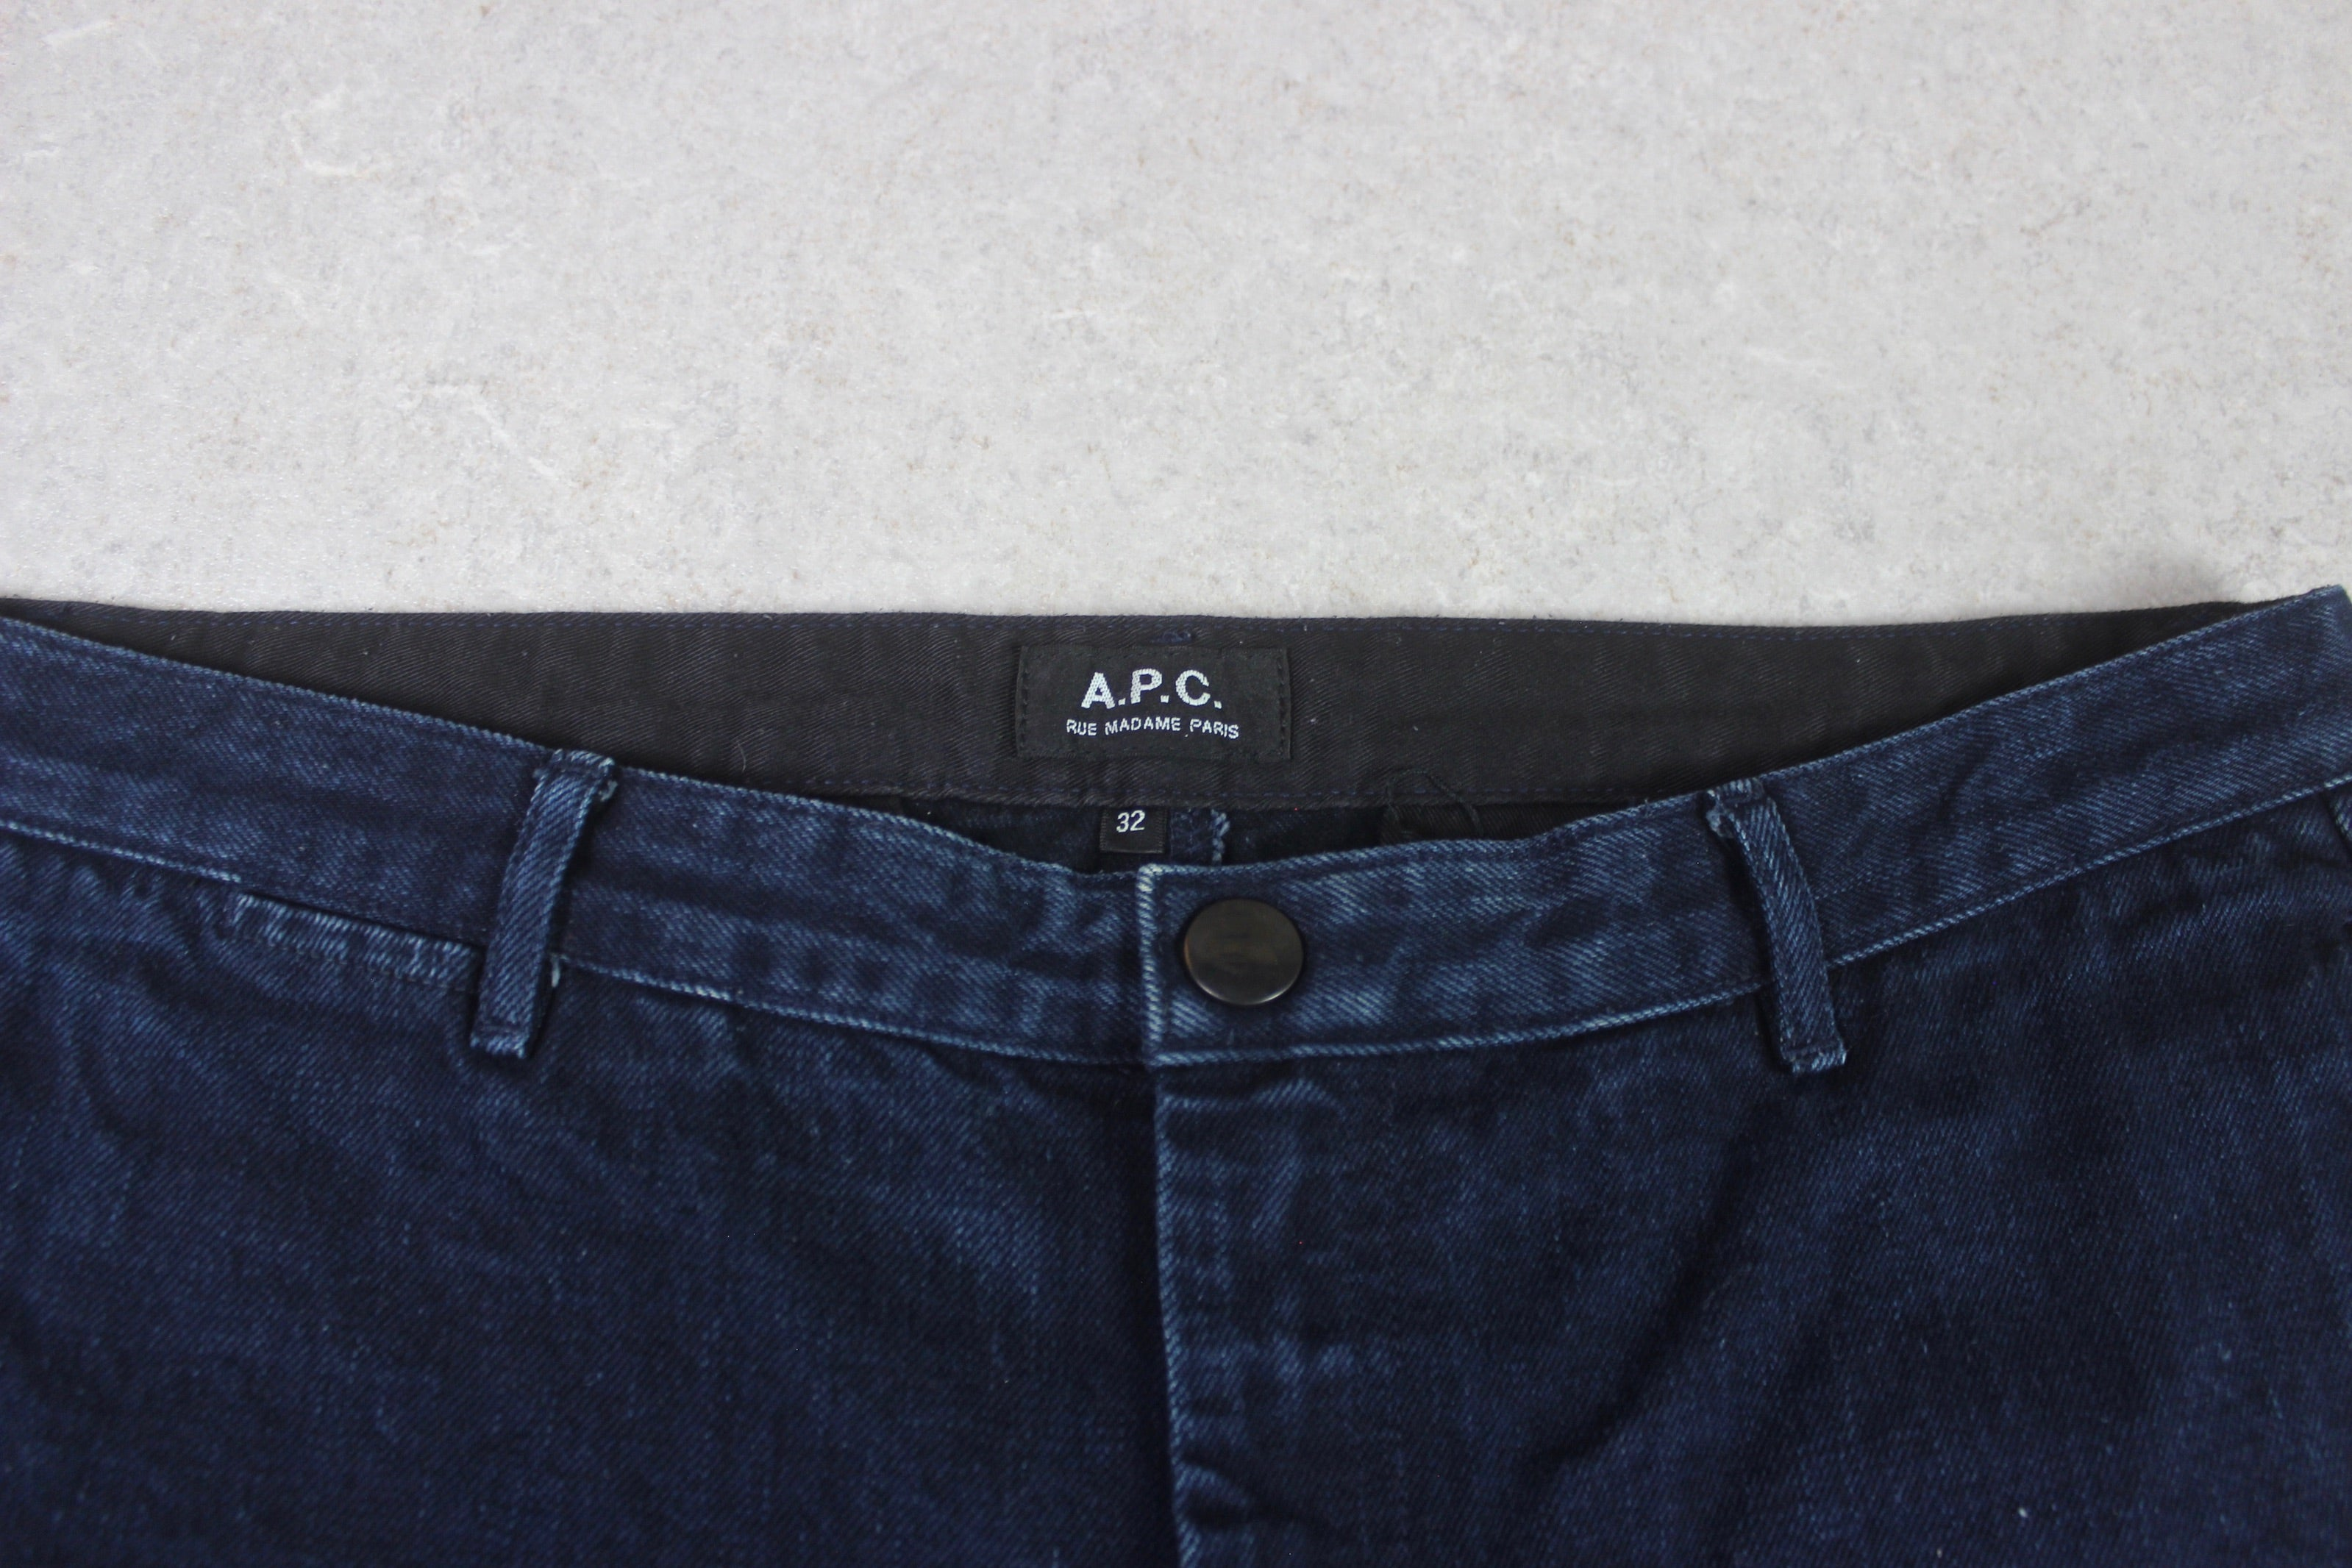 A.P.C. - Denim Chino Trousers/Jeans - Blue - 32